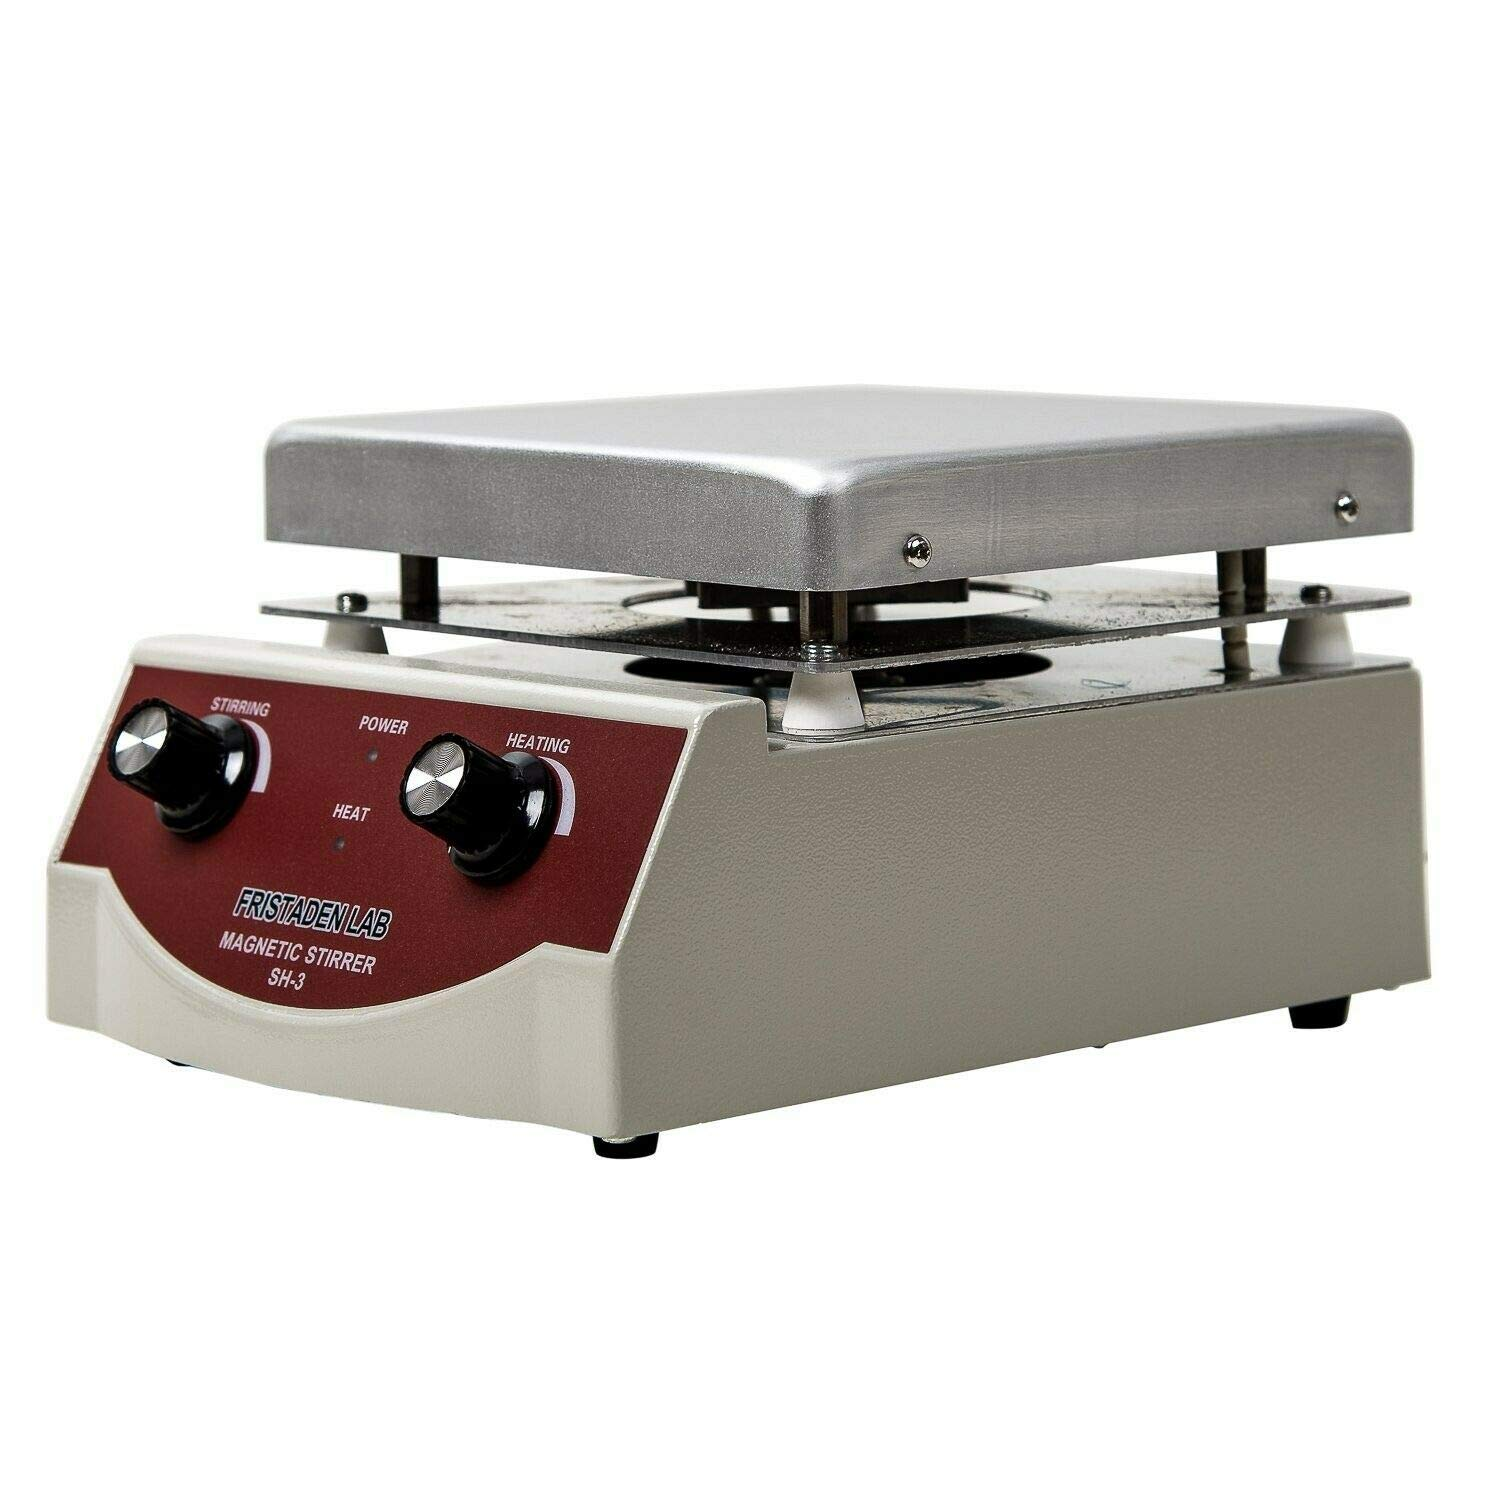 Fristaden Lab SH-3 Magnetic Stirrer Hot Plate Mixer | 100-1600rpm Stirring Speed | 350°C Temperature | 3,000mL Capacity | 1 Year Warranty | Lab Quality Hot Plate Stirrer for Liquid Heating and Mixing by Fristaden Lab